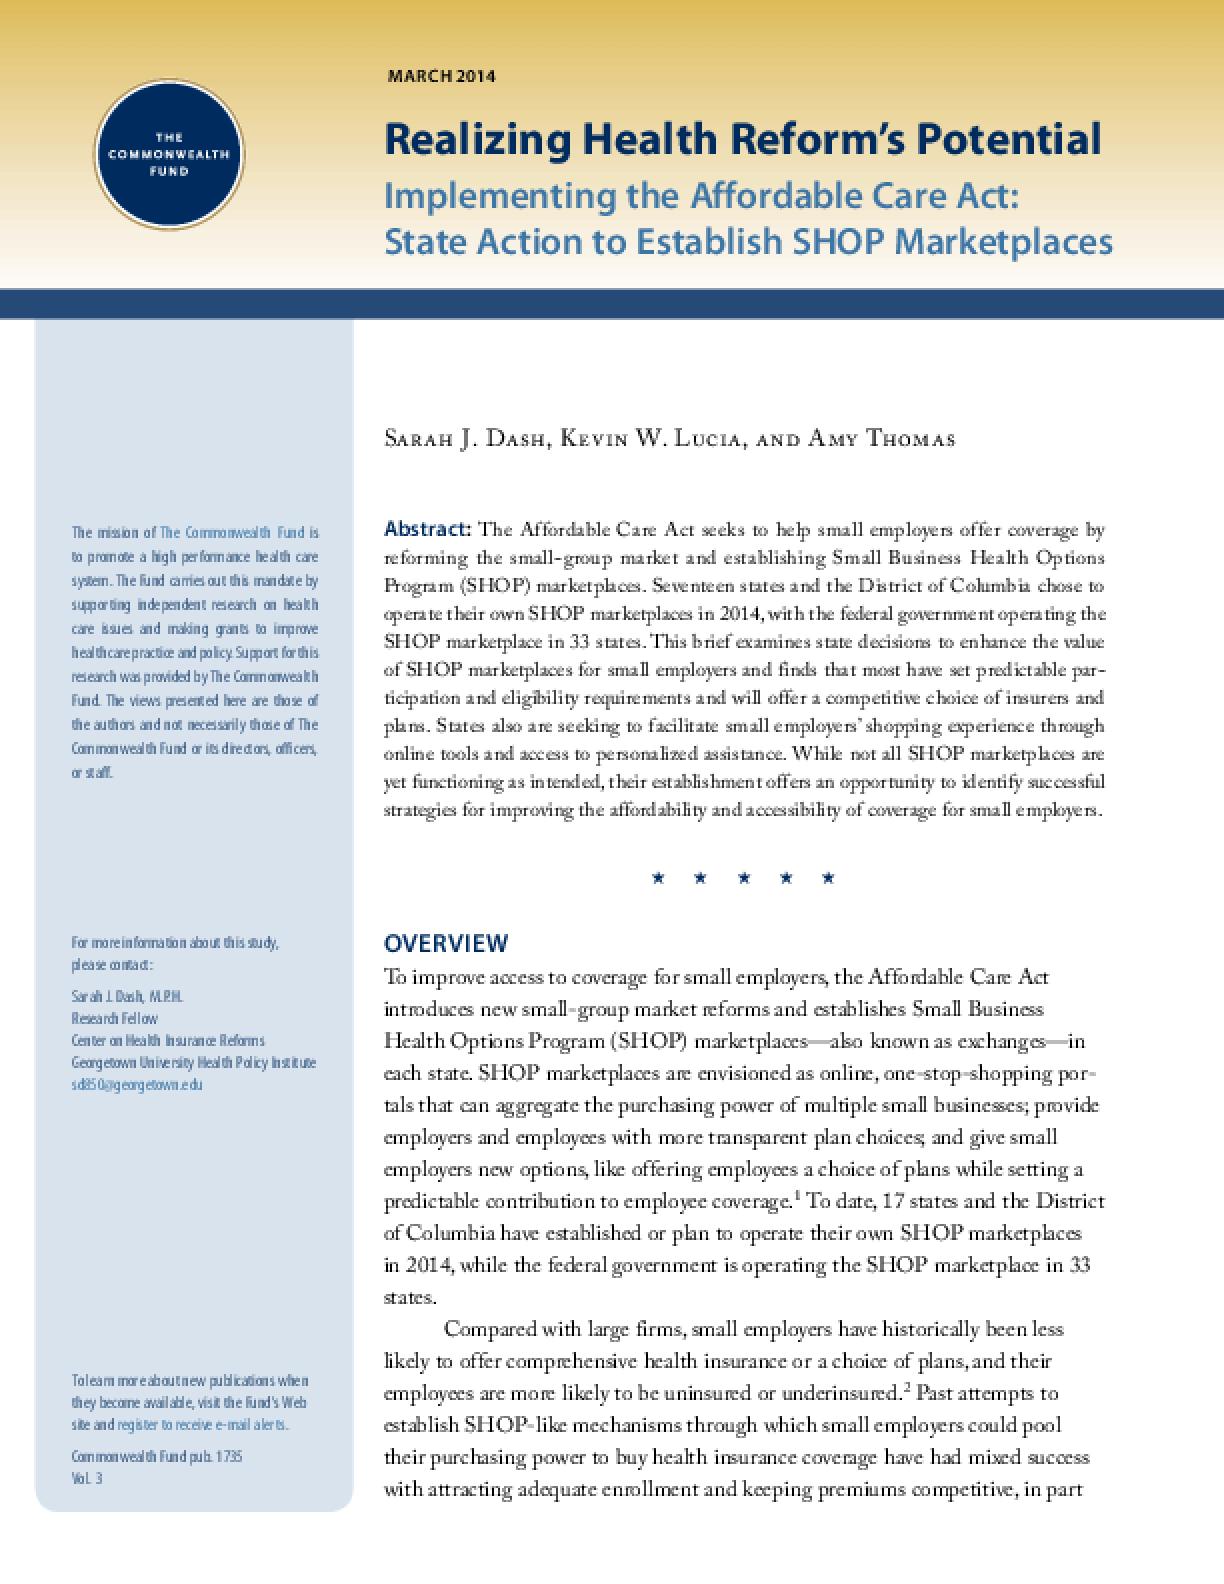 Implementing the Affordable Care Act: State Action to Establish SHOP Marketplaces